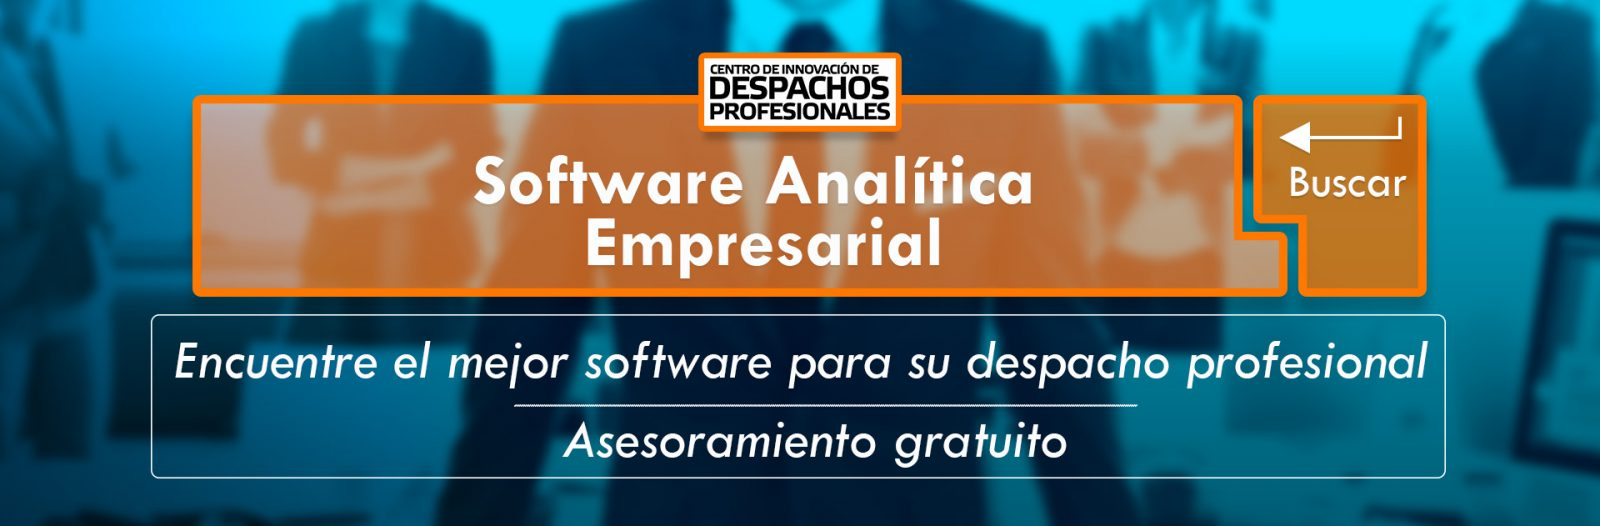 Software Analítica Empresarial